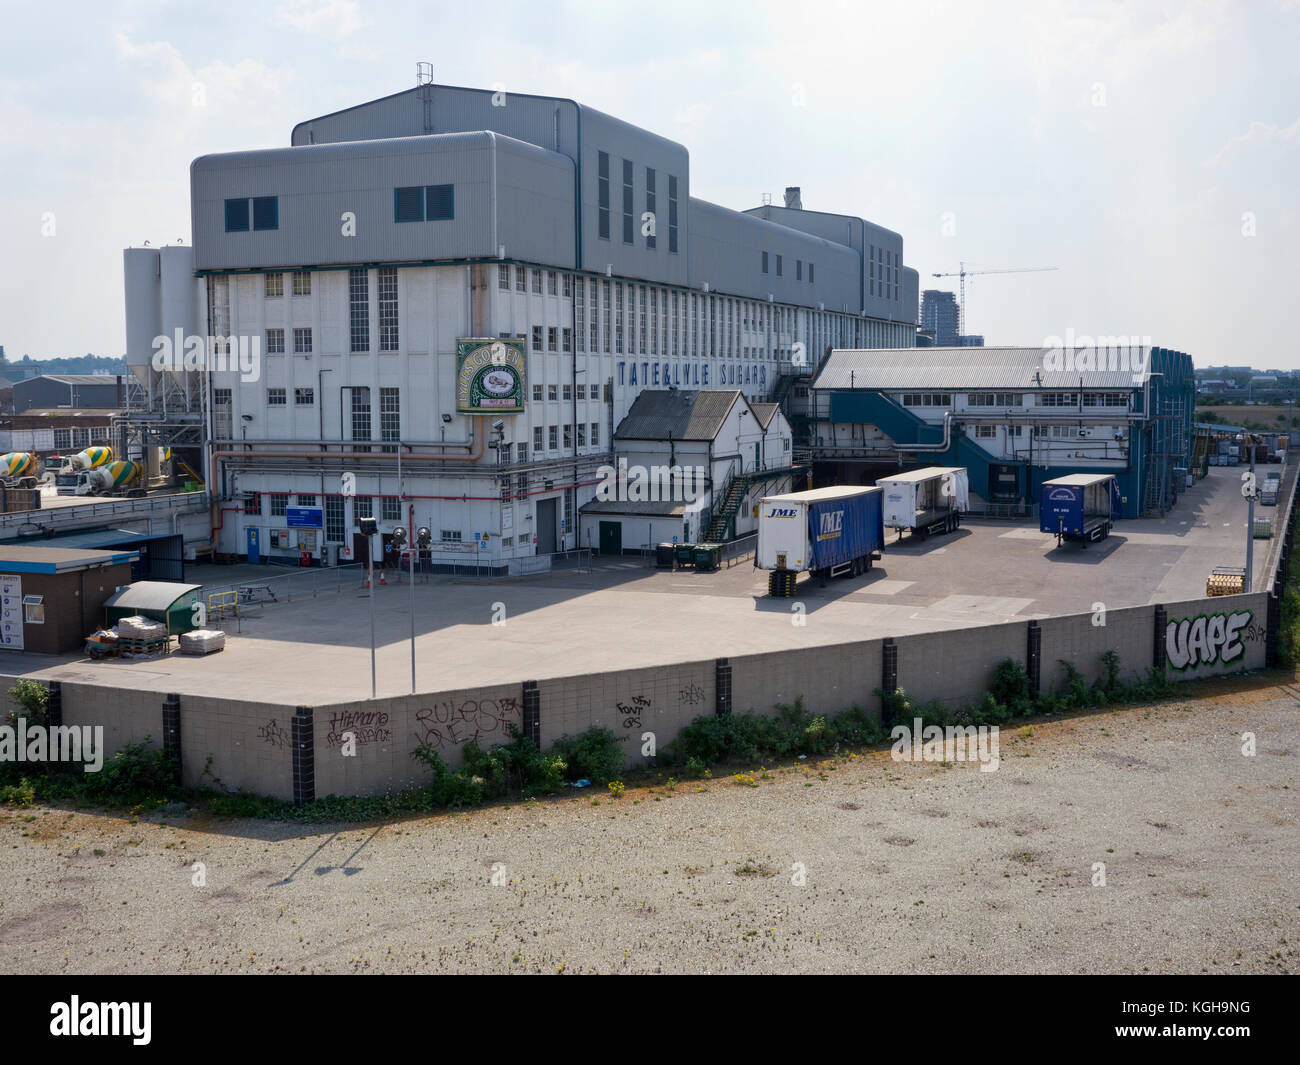 Exterior of the Tate and Lyle sugar refinery at Silvertown in the East End of London on the Thames - Stock Image